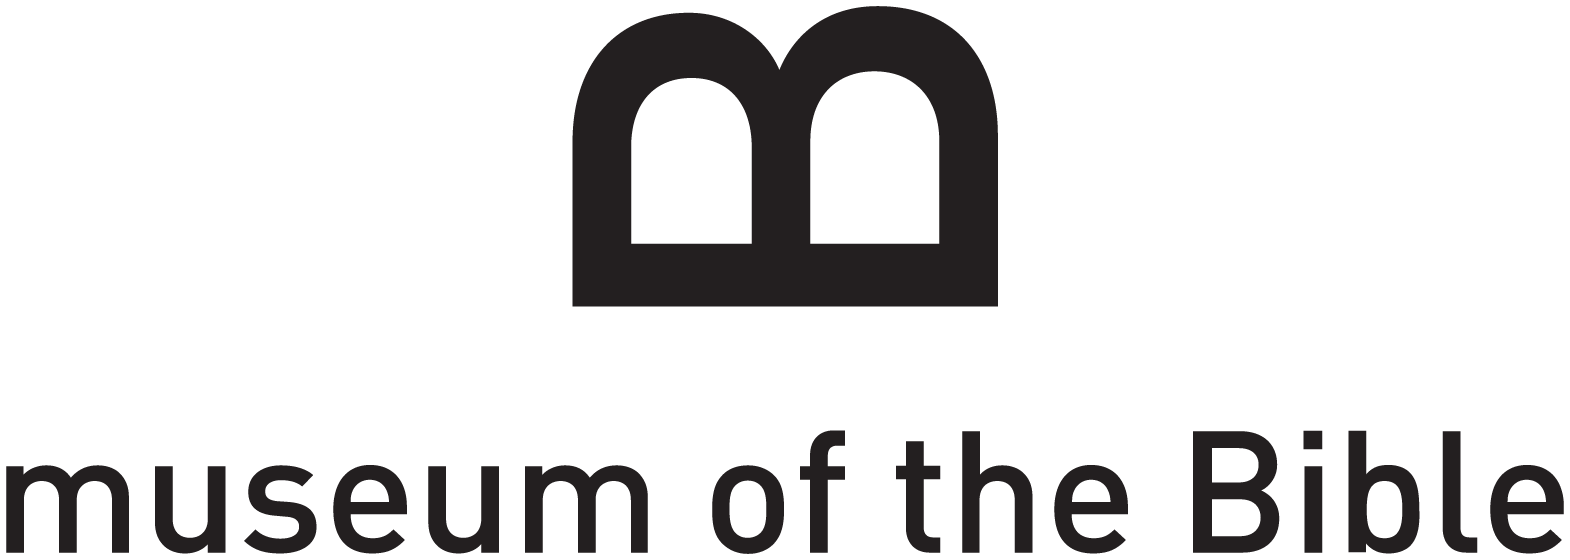 Museum of the Bible [logo]